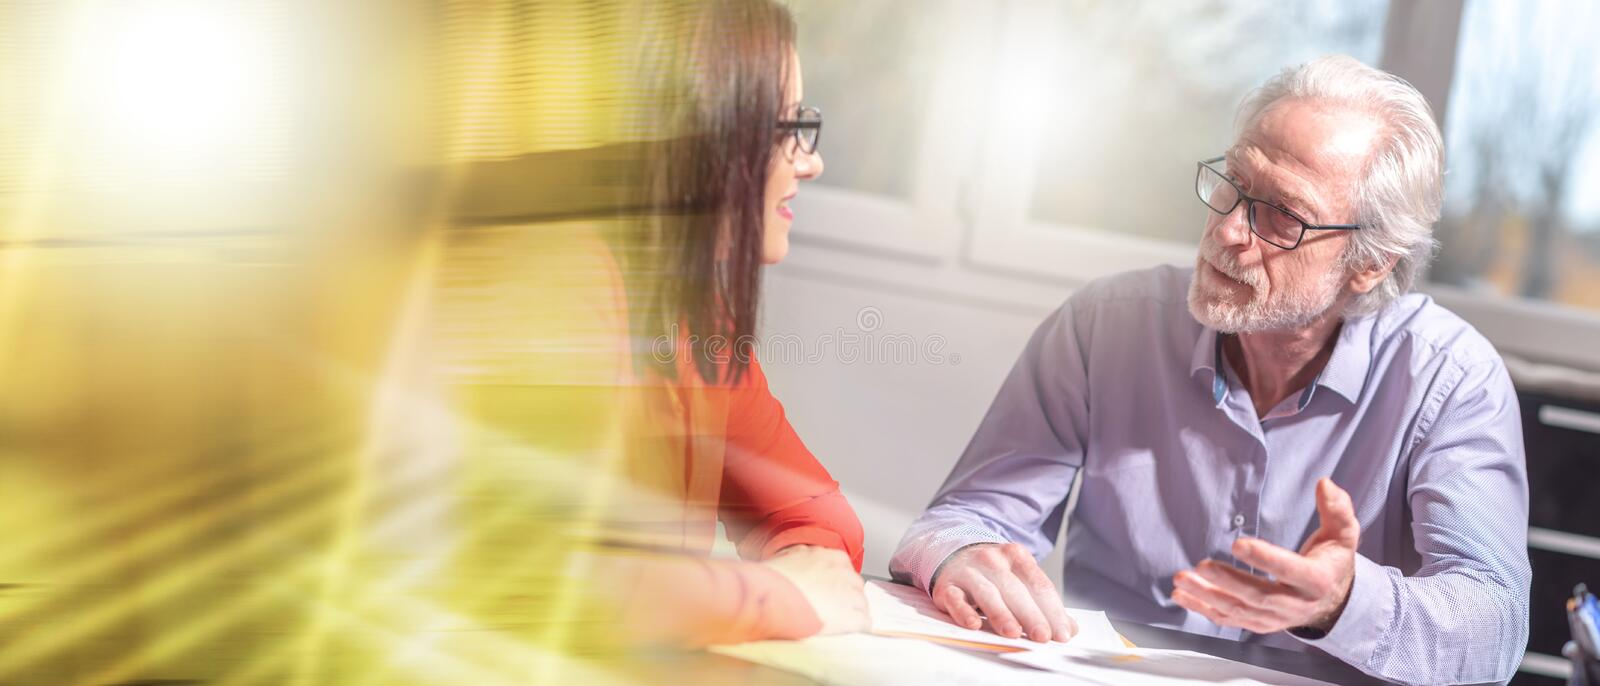 Businesspeople working in office, light effect; multiple exposure royalty free stock photo